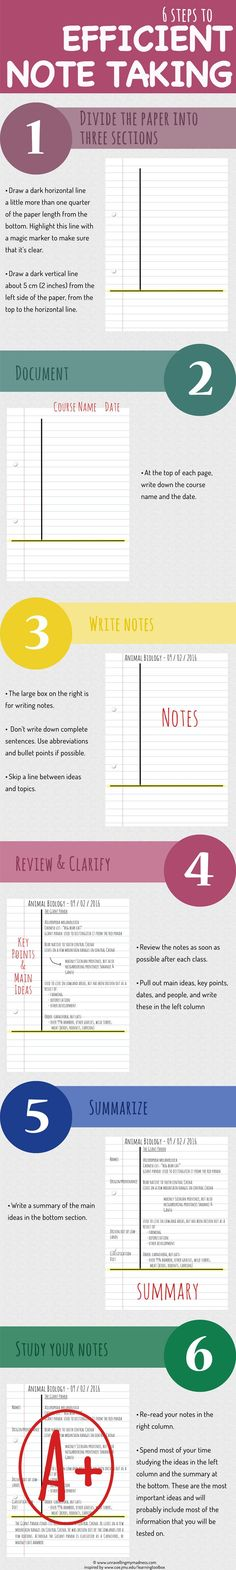 Take Awesome College Notes note-taking tips Schule Awesome College notes notetaking Schule wortschatz Tips E Learning, Learning Styles, Note Taking Tips, Taking Notes, Blogging, School Study Tips, School Tips, School Stuff, Study Tips